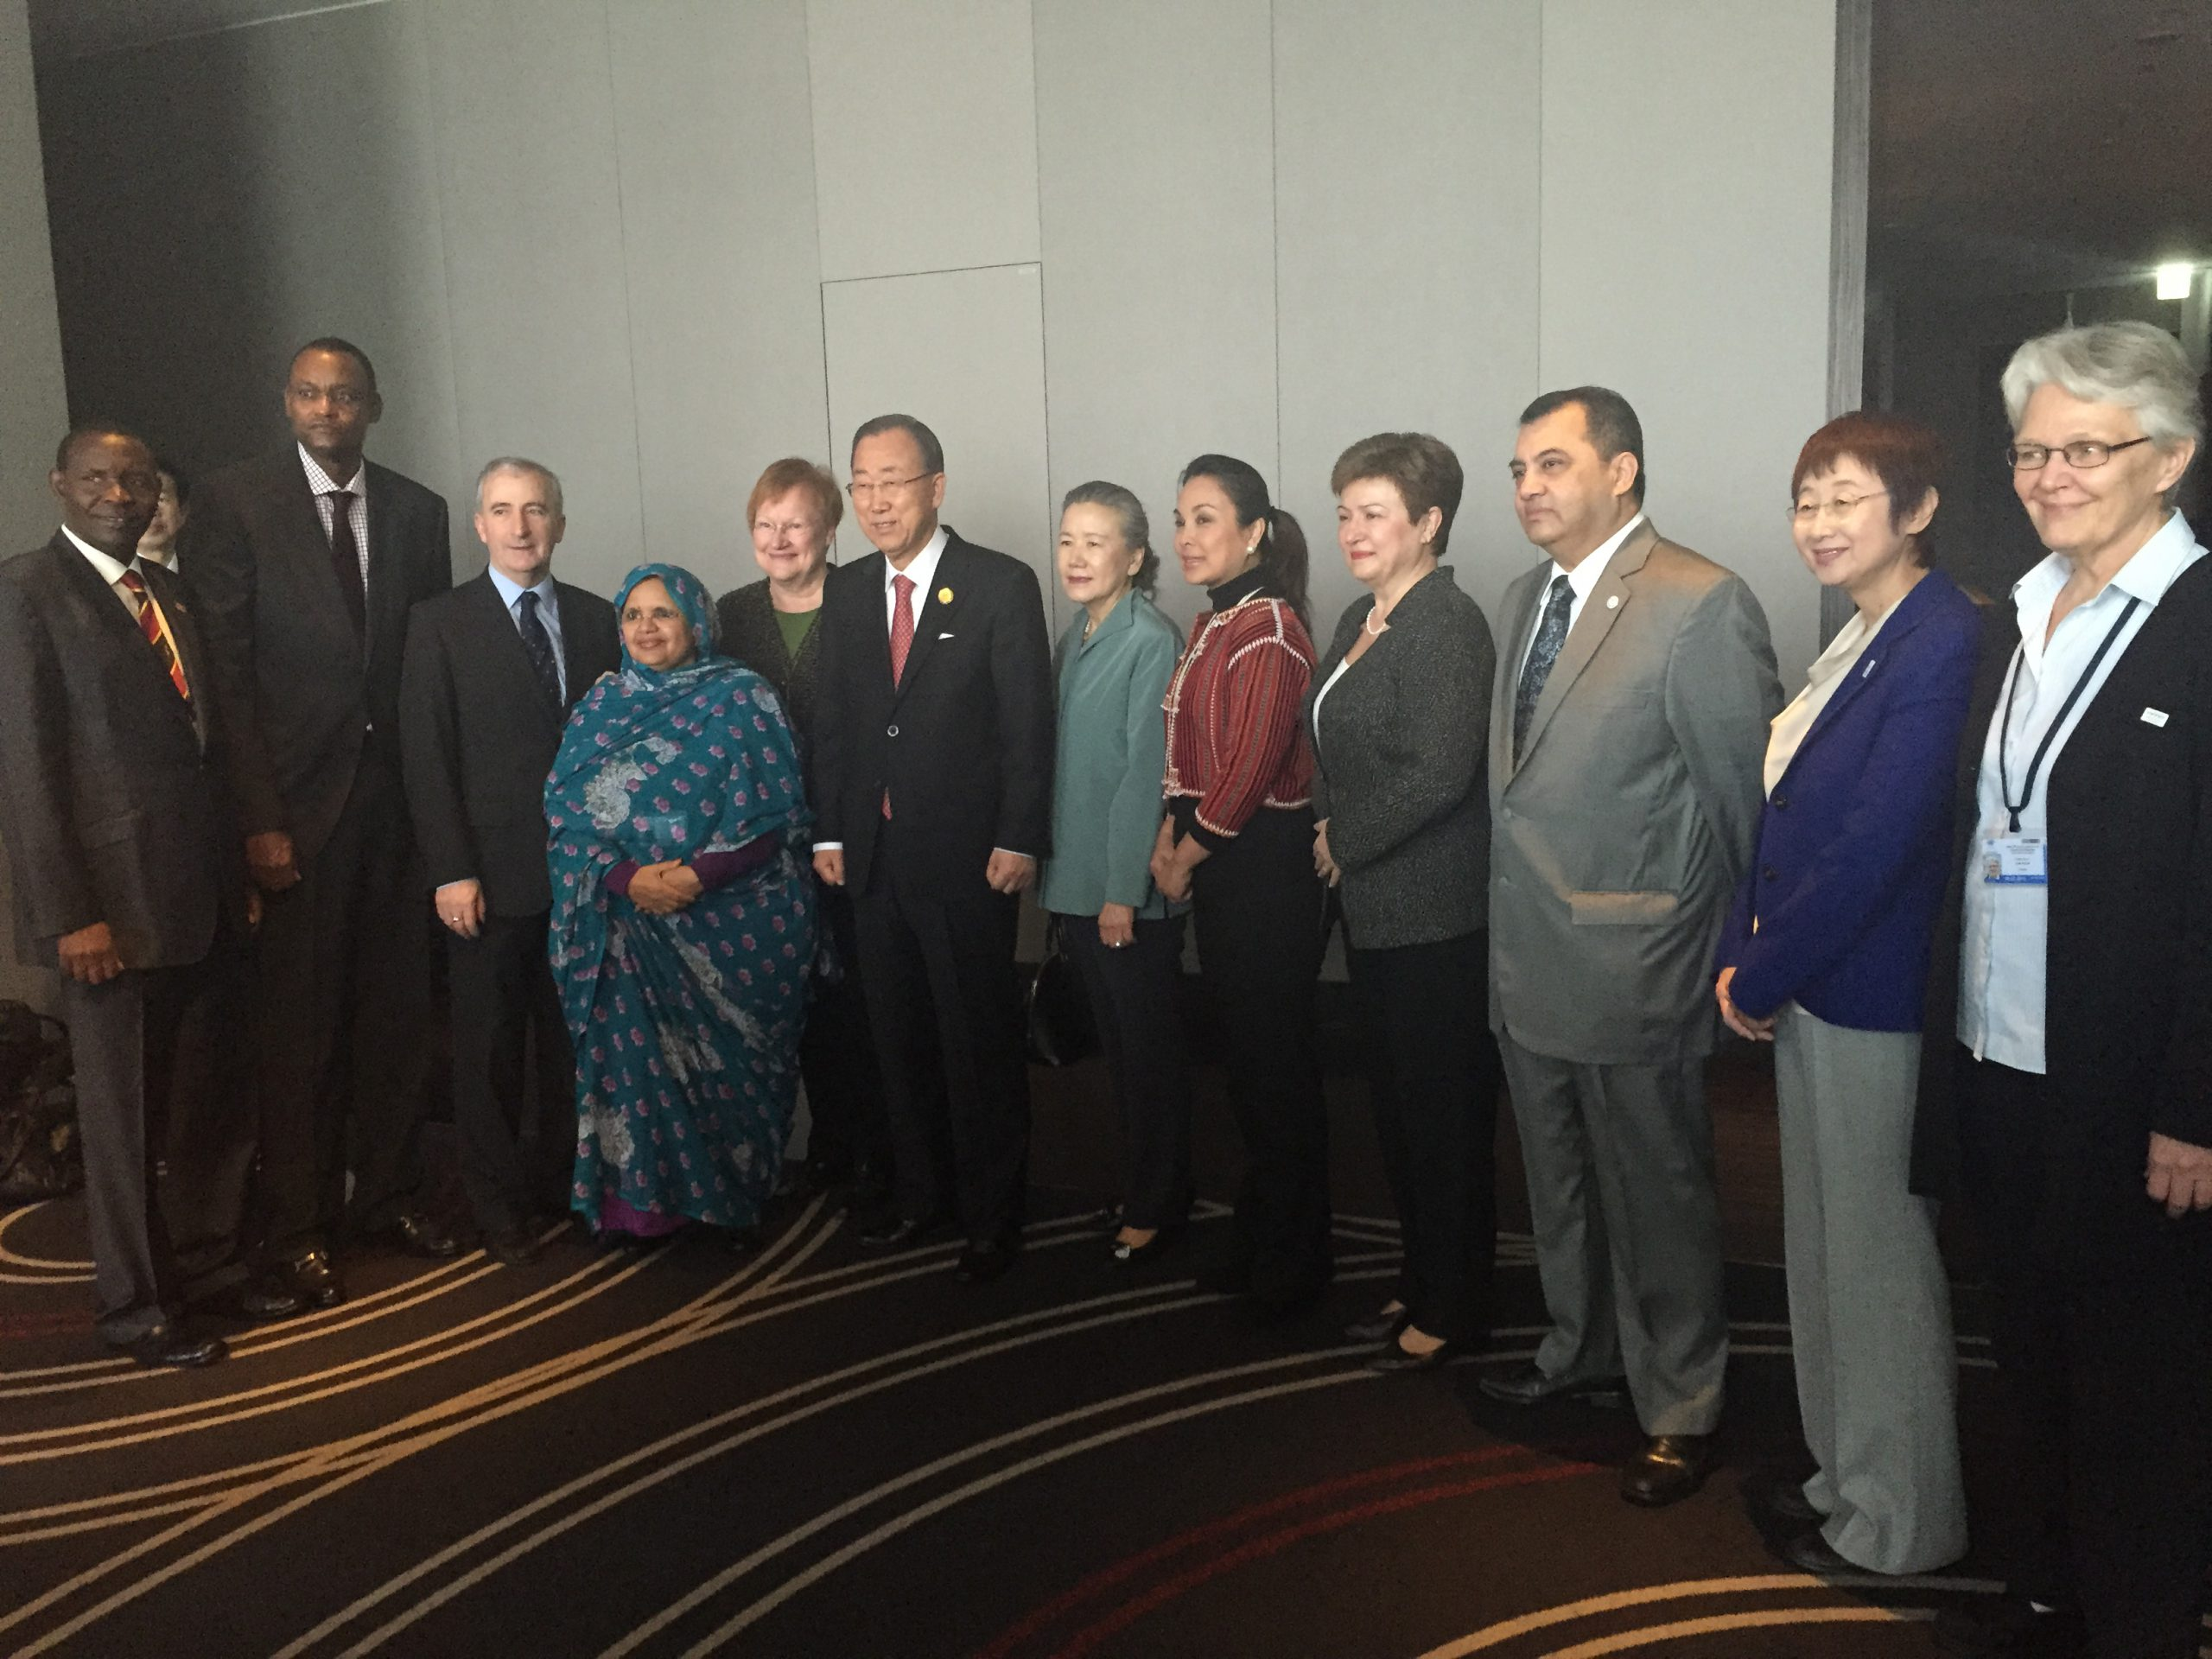 Special Meeting among DRR Champions with the UN Secretary-General Ban Ki-Moon